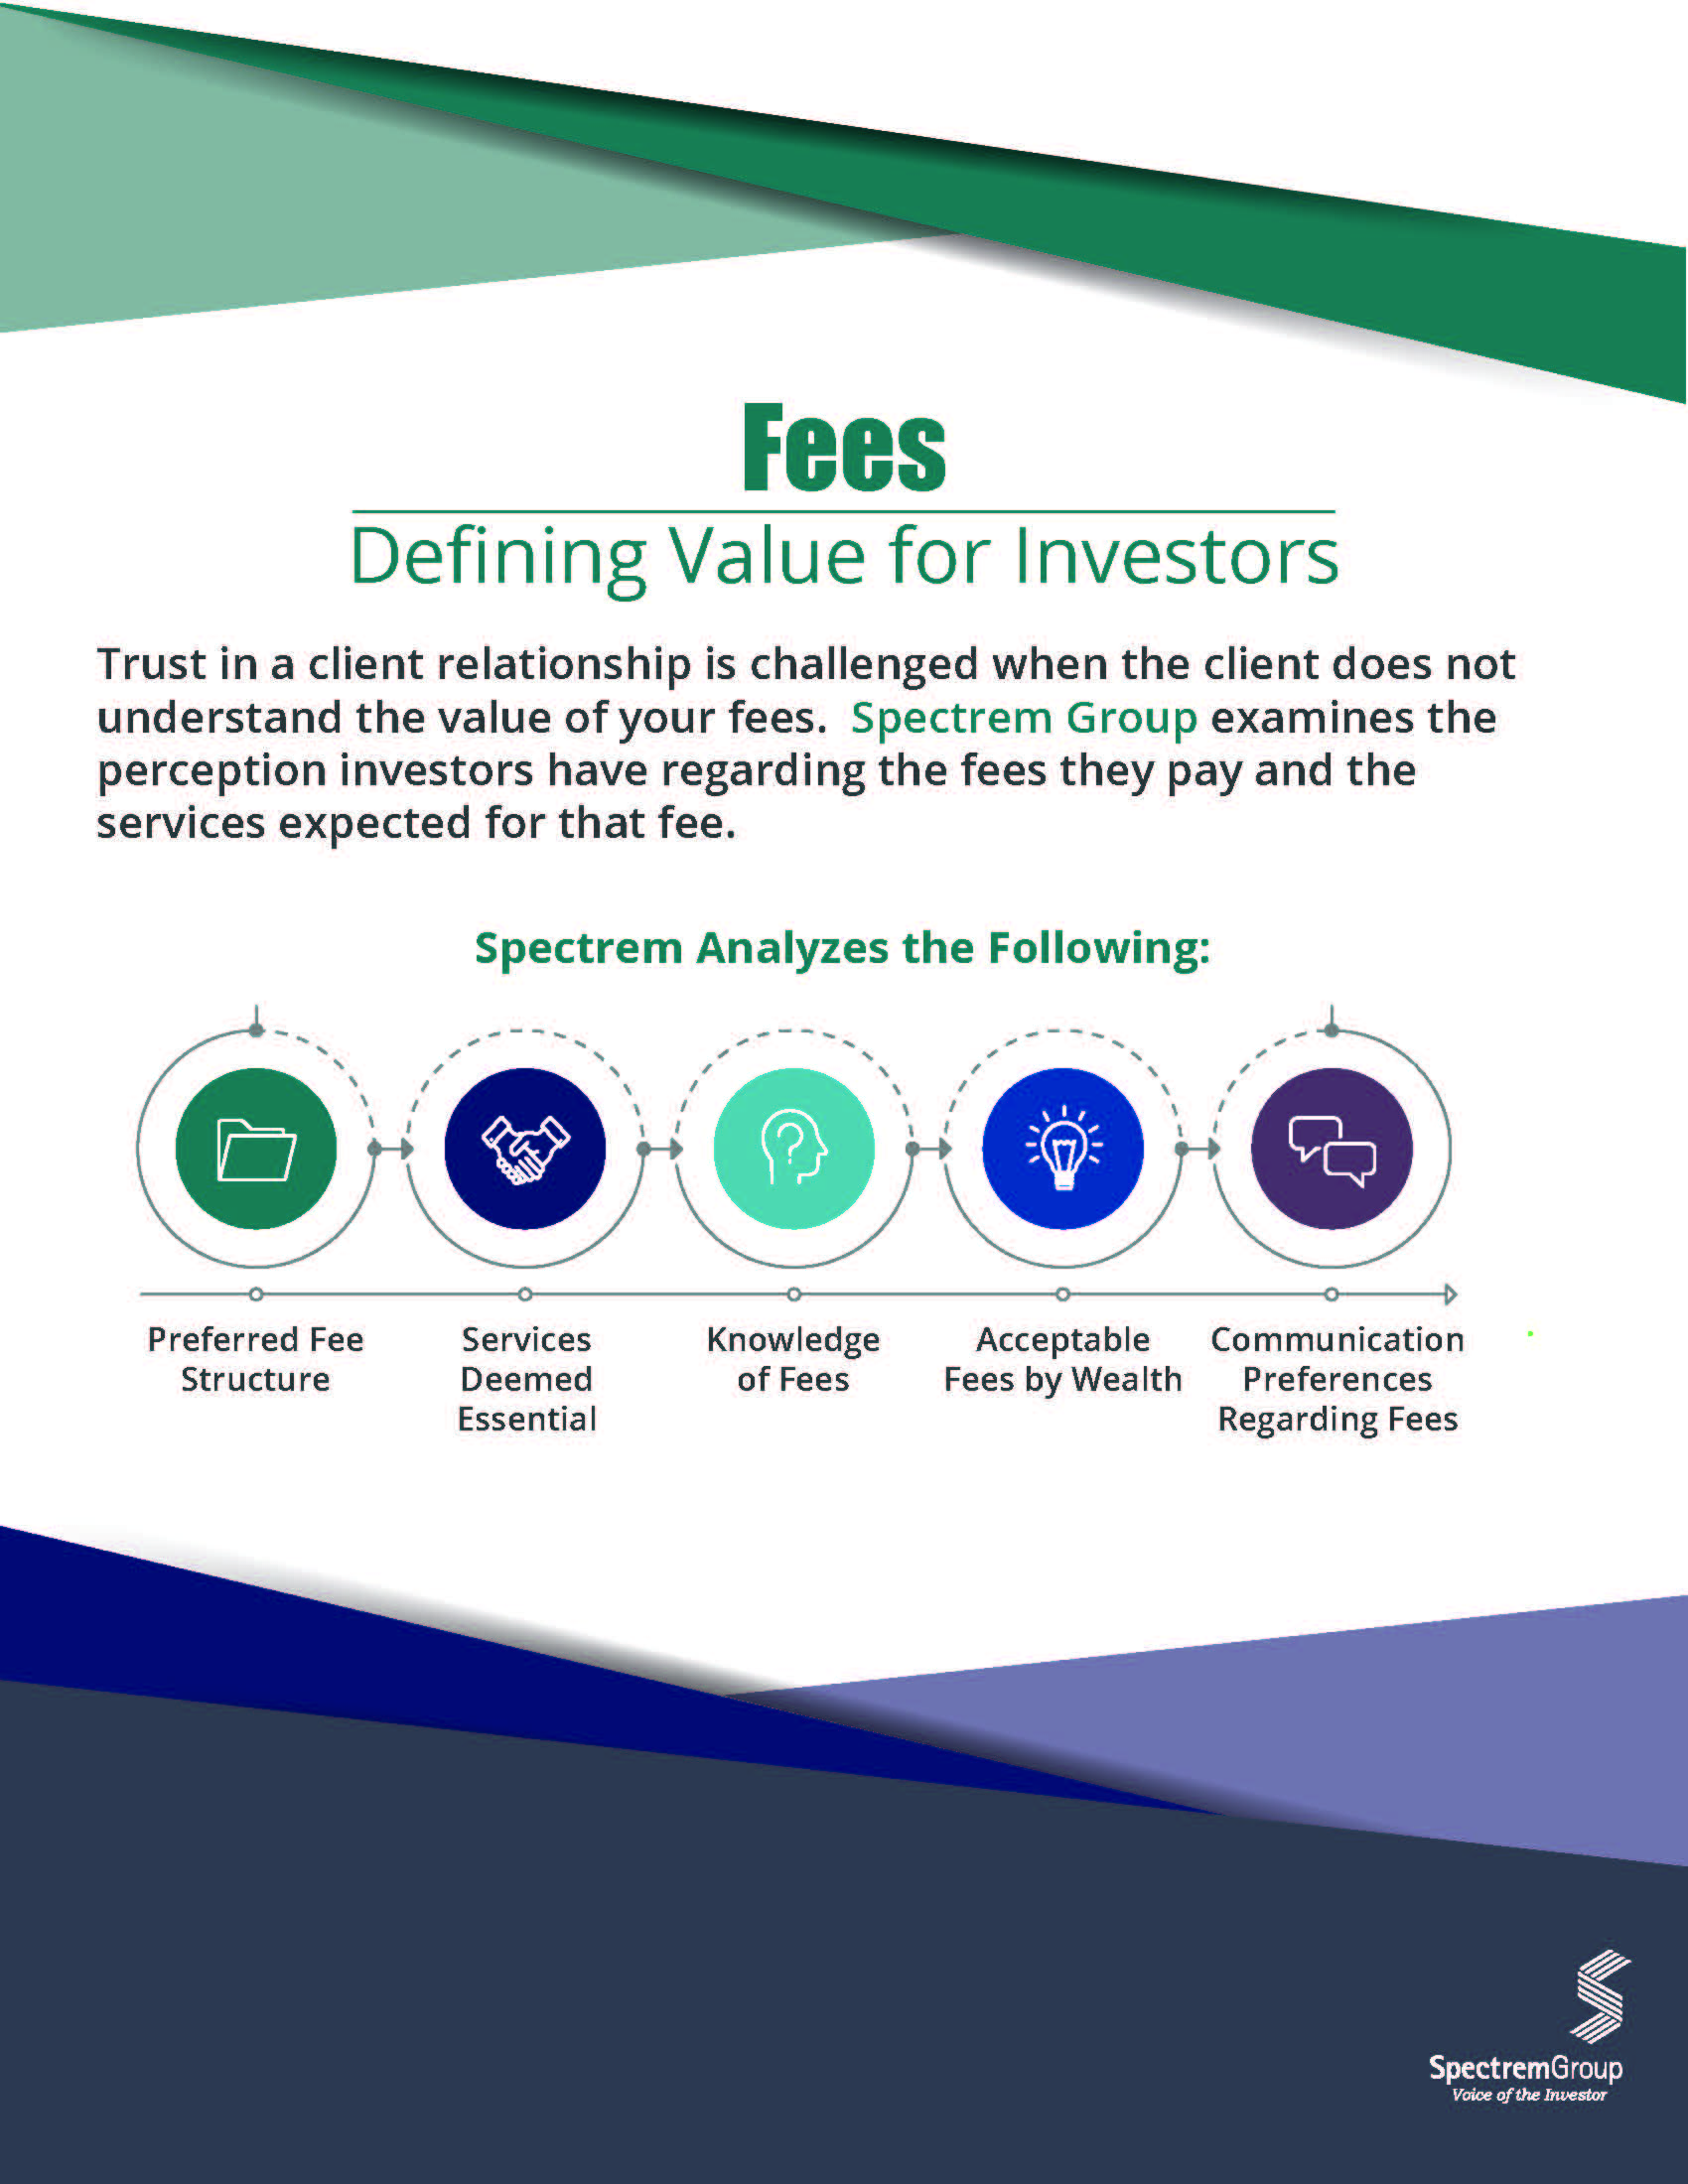 Fees: Defining Value for Investors